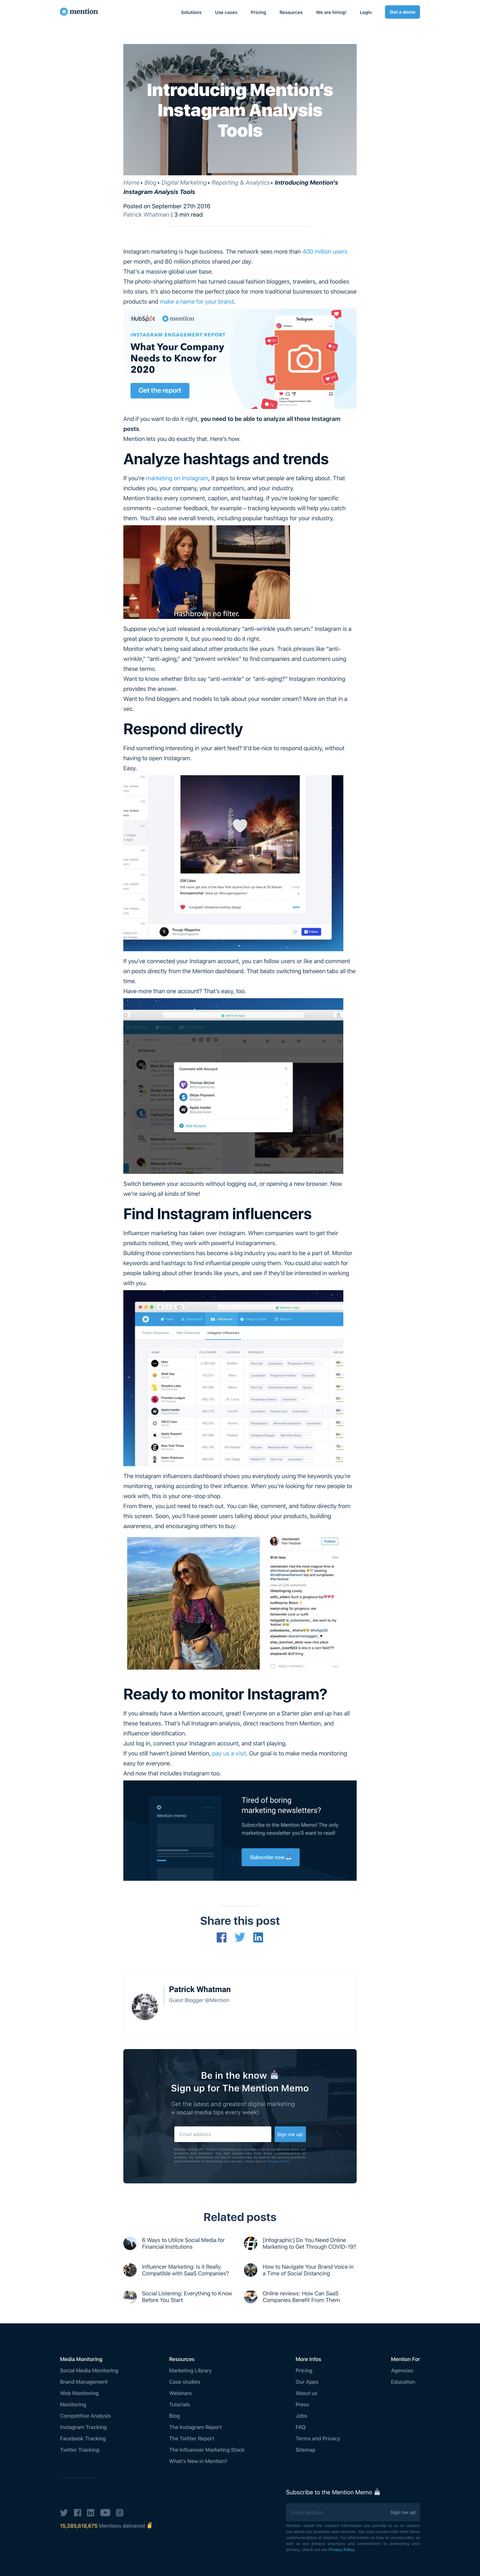 Introducing Mention's Instagram Analysis Tools